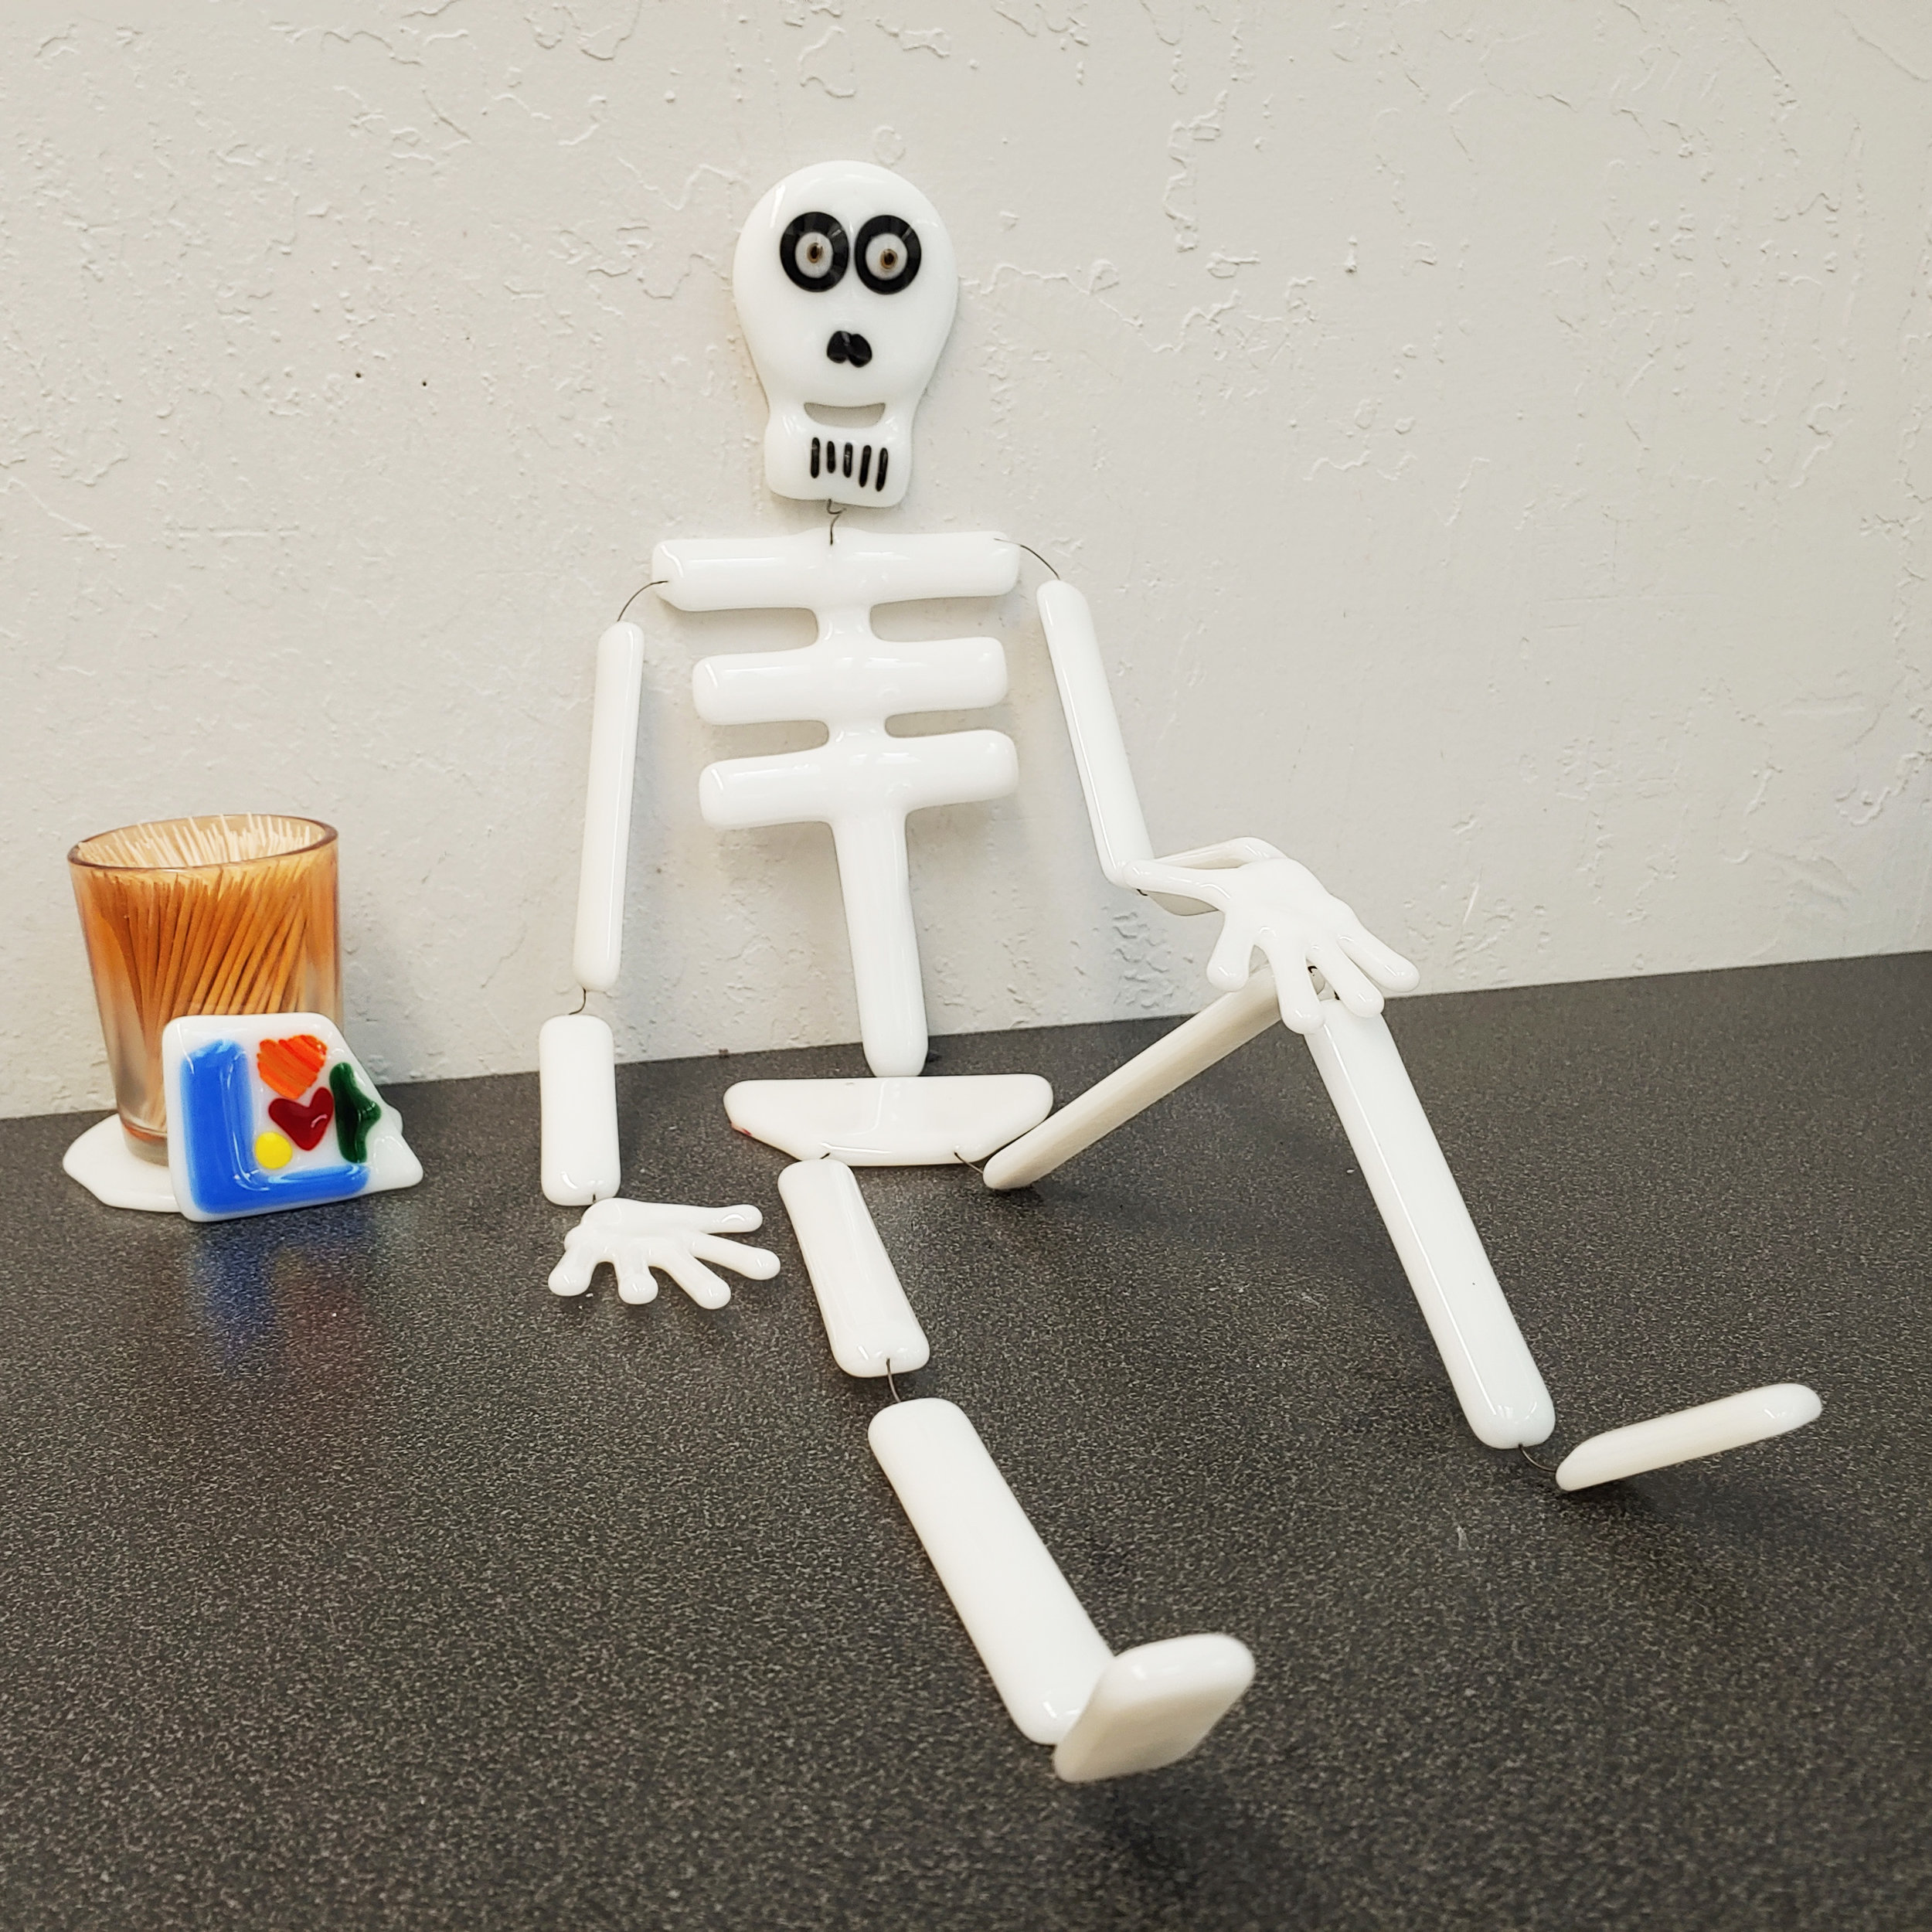 Skeleton - October 26, 5:00 PM - 6:30 PMThe perfect mix of spook and whimsy, these fun skeletons are a easy way to spook up your front door or any window. Using high temperature wire, we'll link together the bones for a funky fused friend. Skills: glass cutting, metal inclusions Ages: 12+